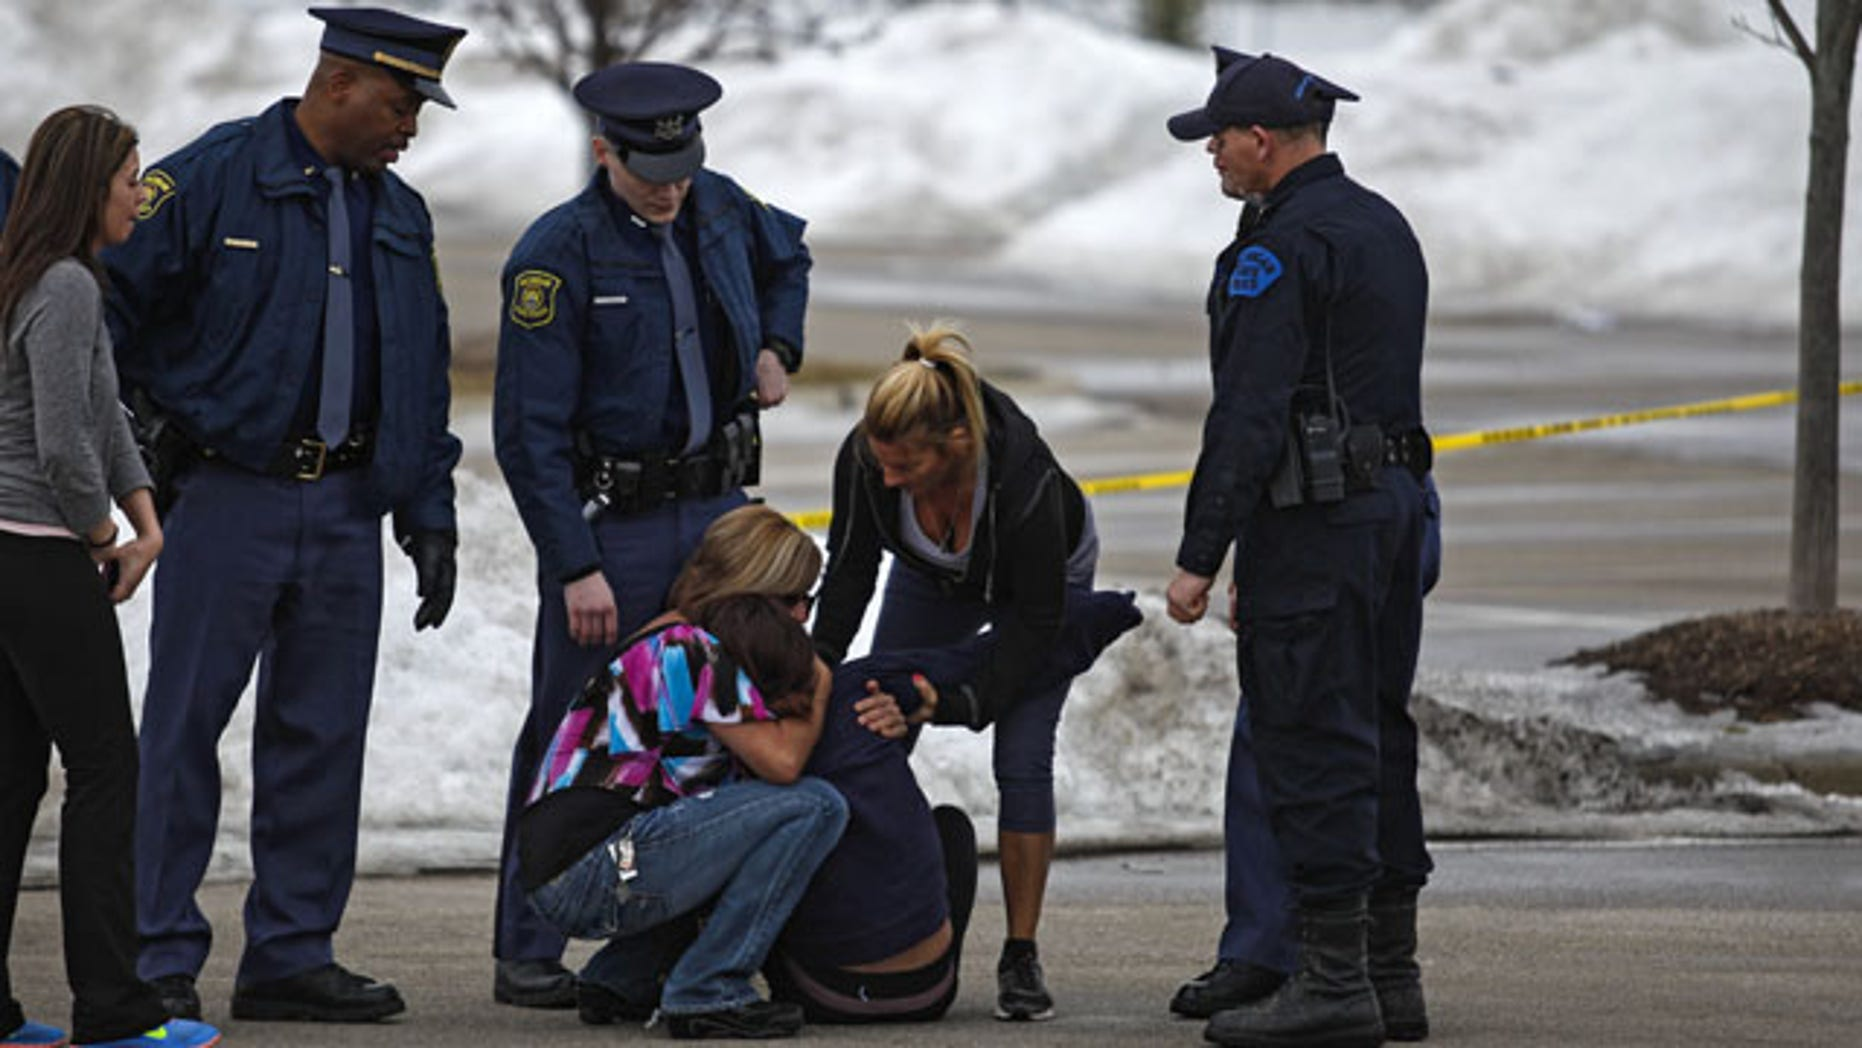 March 11, 2014: Skye Cieszlak, girlfriend of missing Saginaw Spirit hockey player Terry Trafford, is comforted after collapsing in the parking lot of the Saginaw Township Wal-Mart. Police found Trafford's body in an SUV in the parking lot (AP Photo/The Saginaw News, Neil Barris)